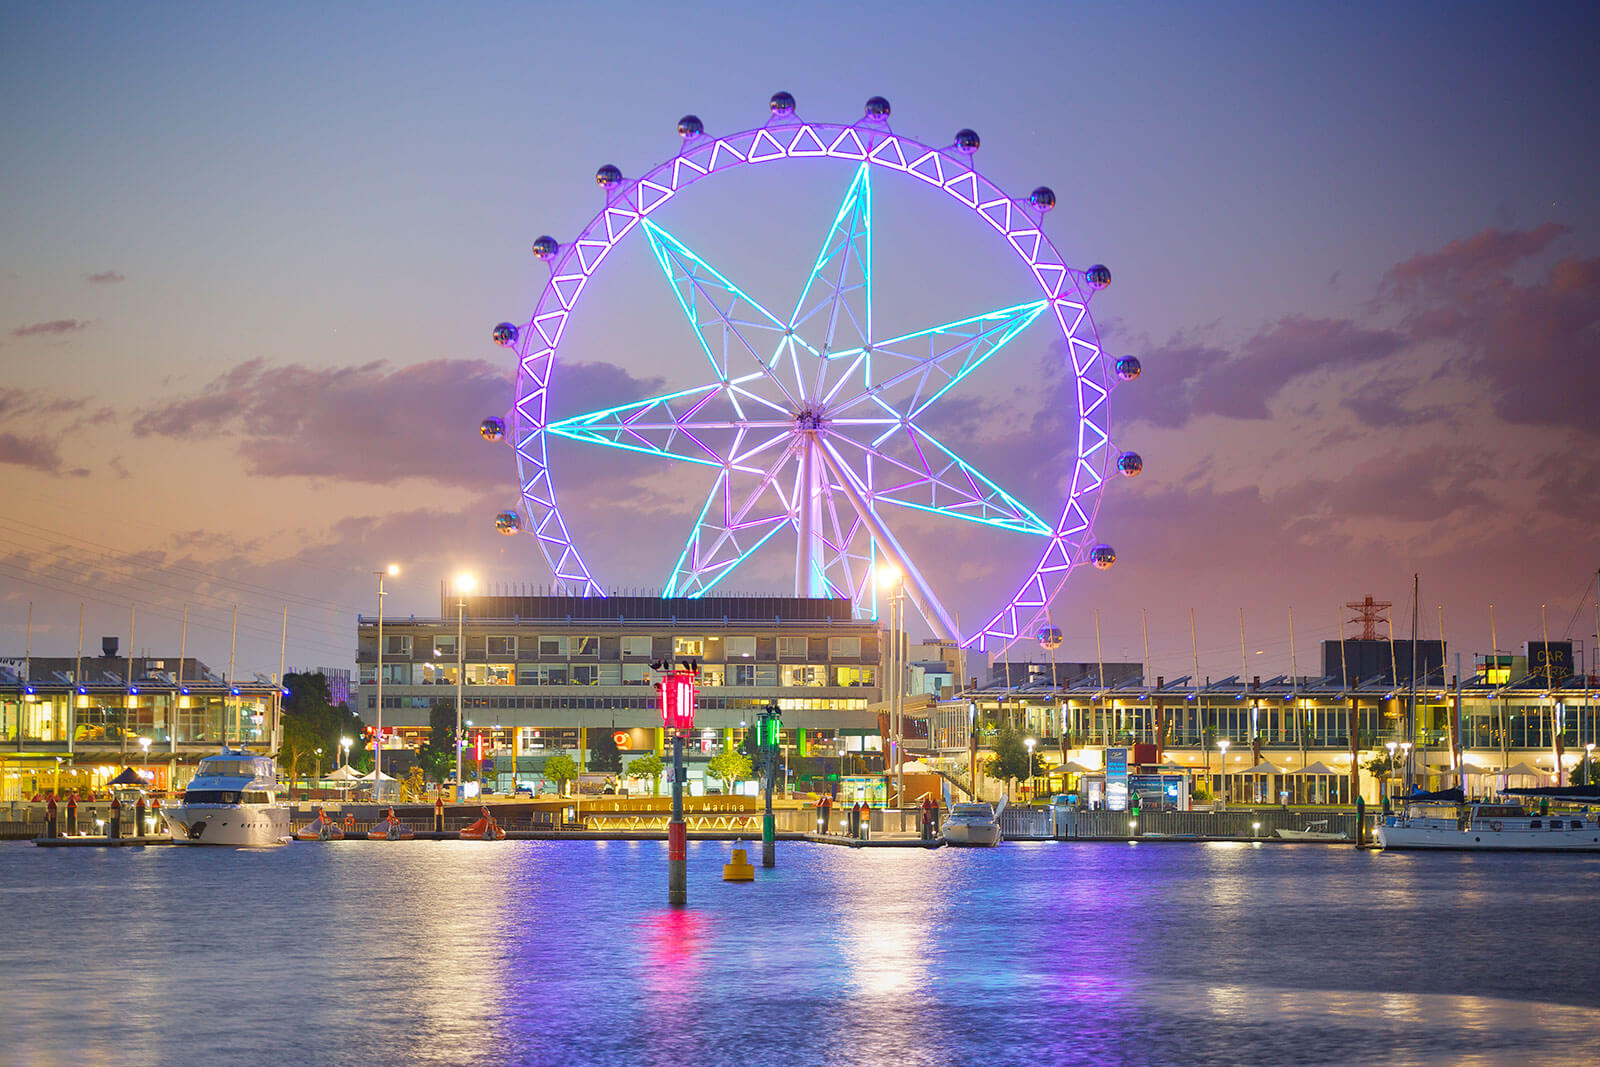 The Melbourne Star Observation Wheel